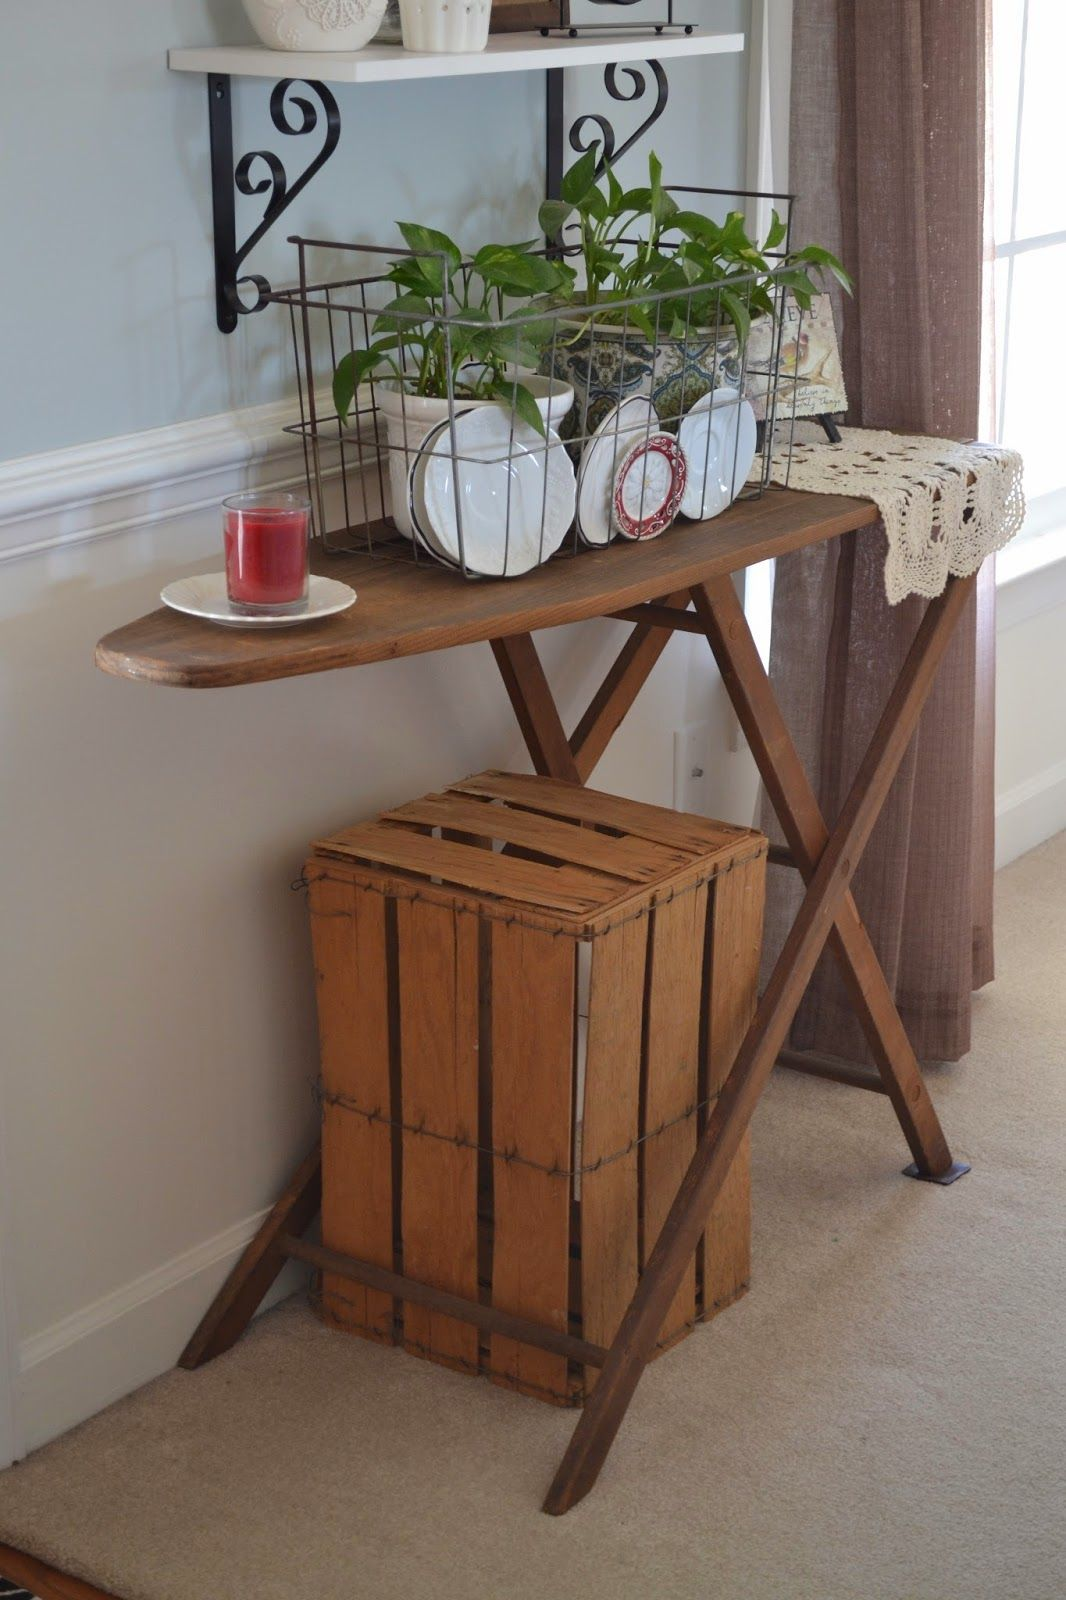 Antique Ironing Board Decorating Google Search Upcycles